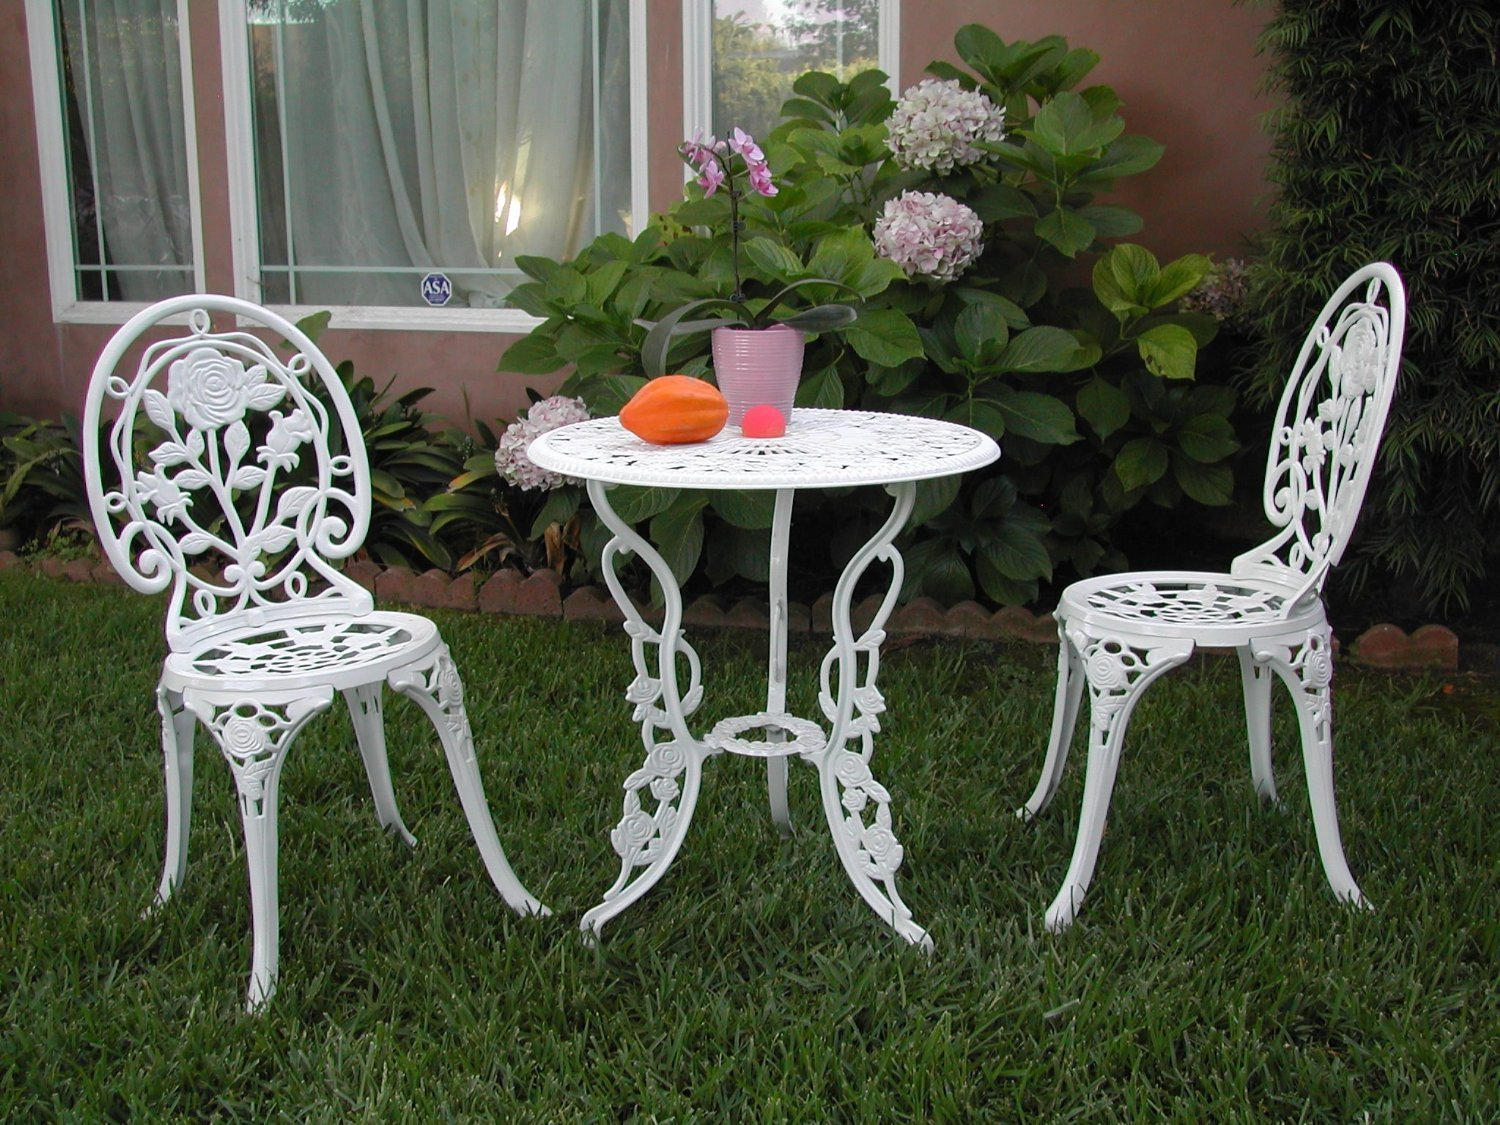 patio furniture white. Amazon.com: Outdoor Patio Furniture 3 Piece Cast Aluminum Bistro Set F CBM1290: Garden \u0026 White N